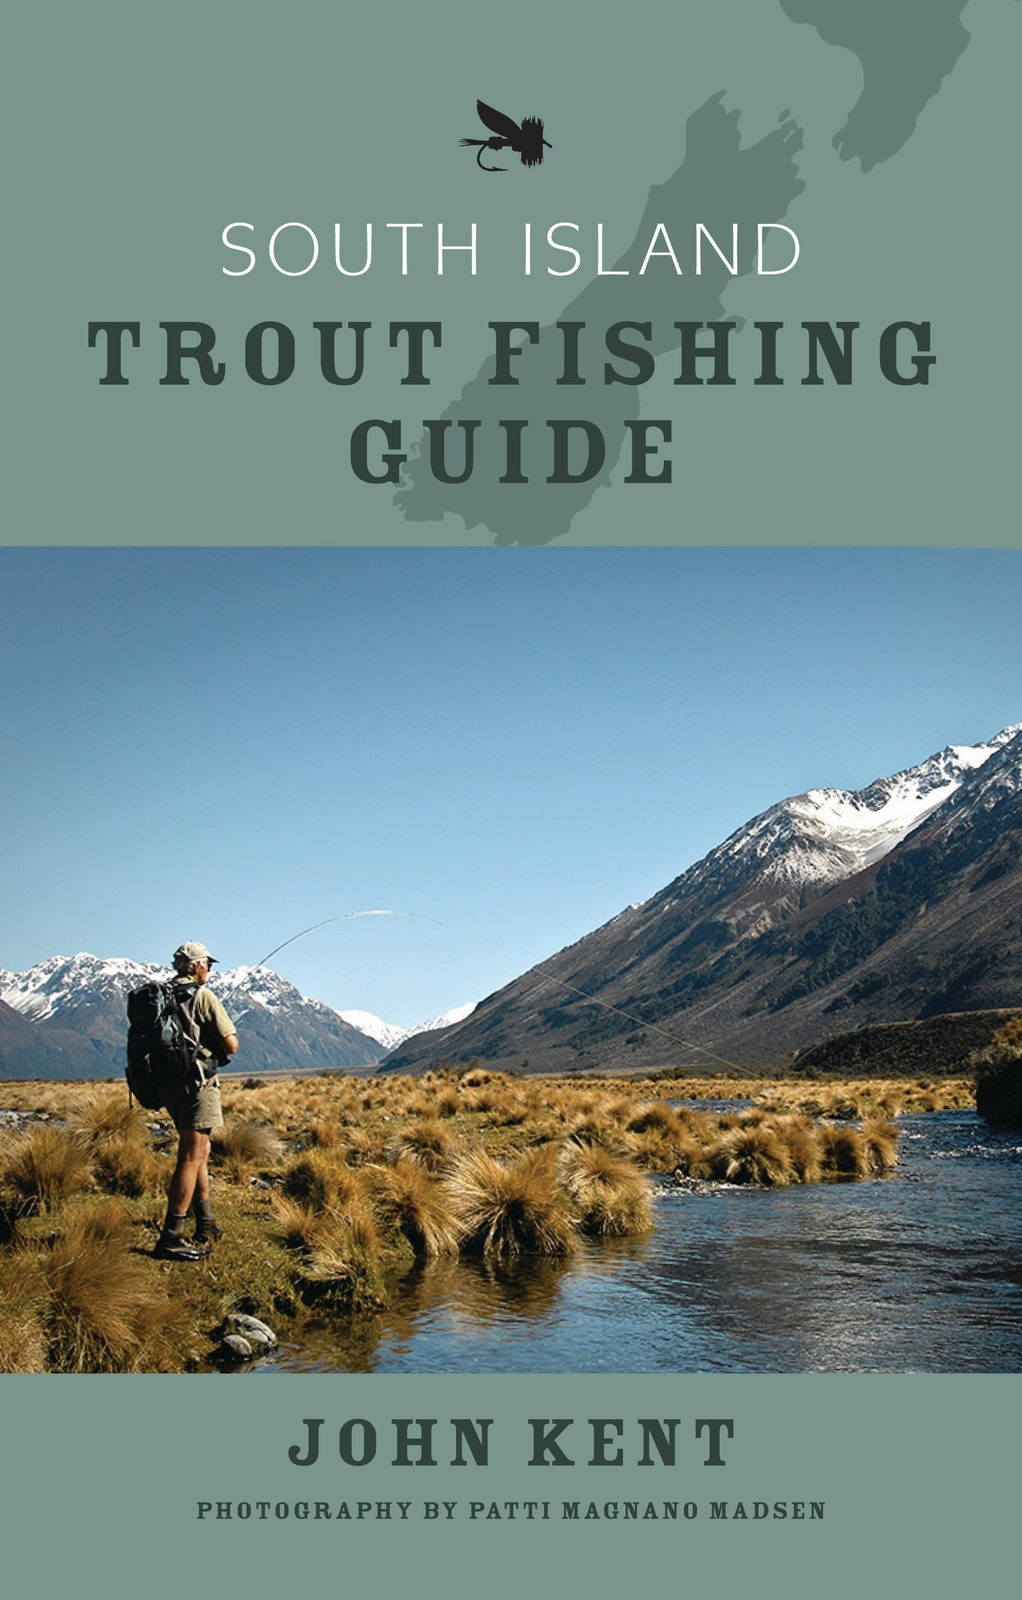 South Island Trout Fishing Guide by John Kent image